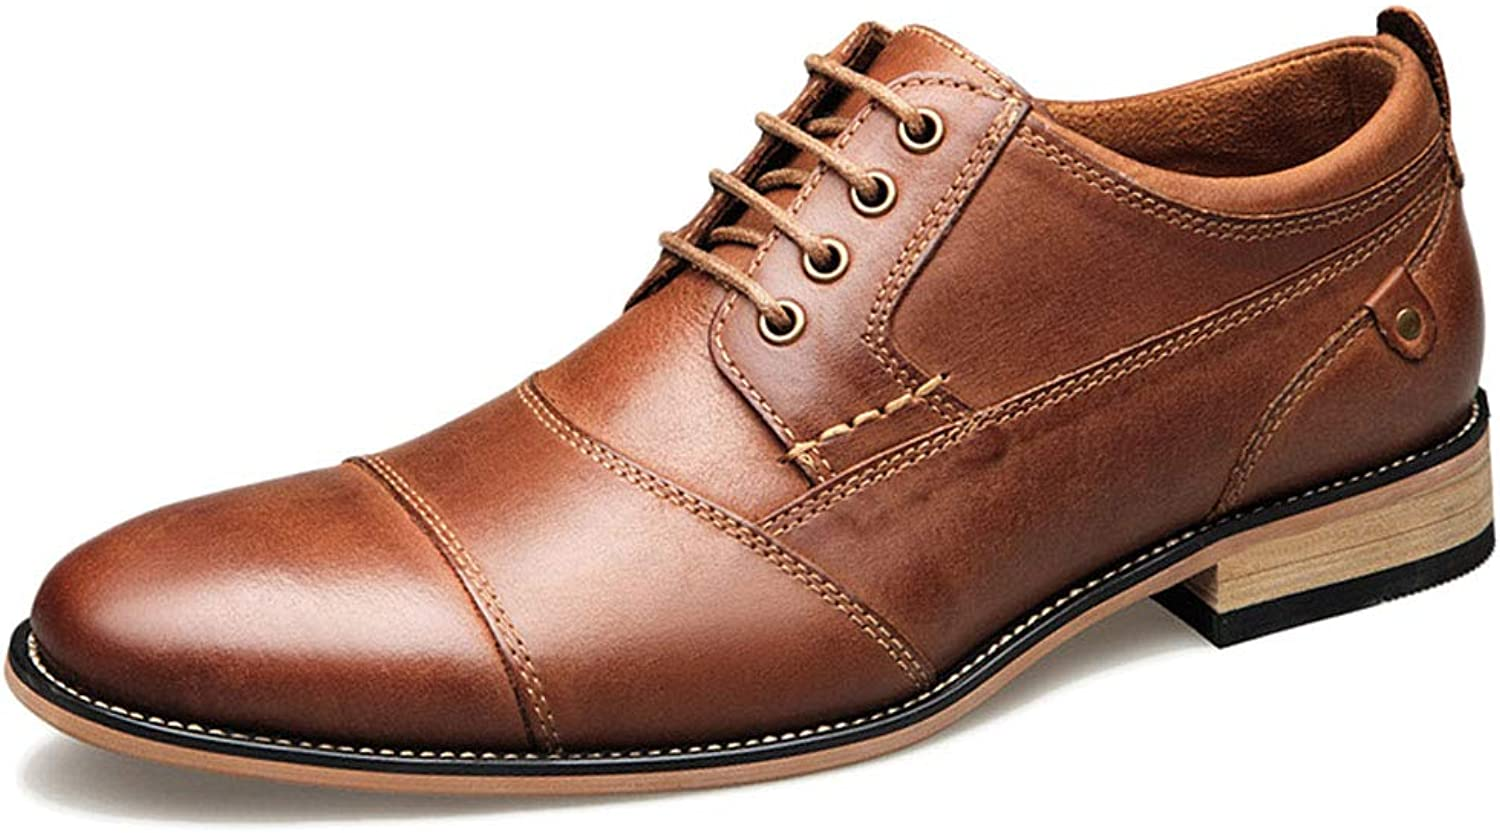 Dark Brown Leather Men's Dress Men's Leather shoes